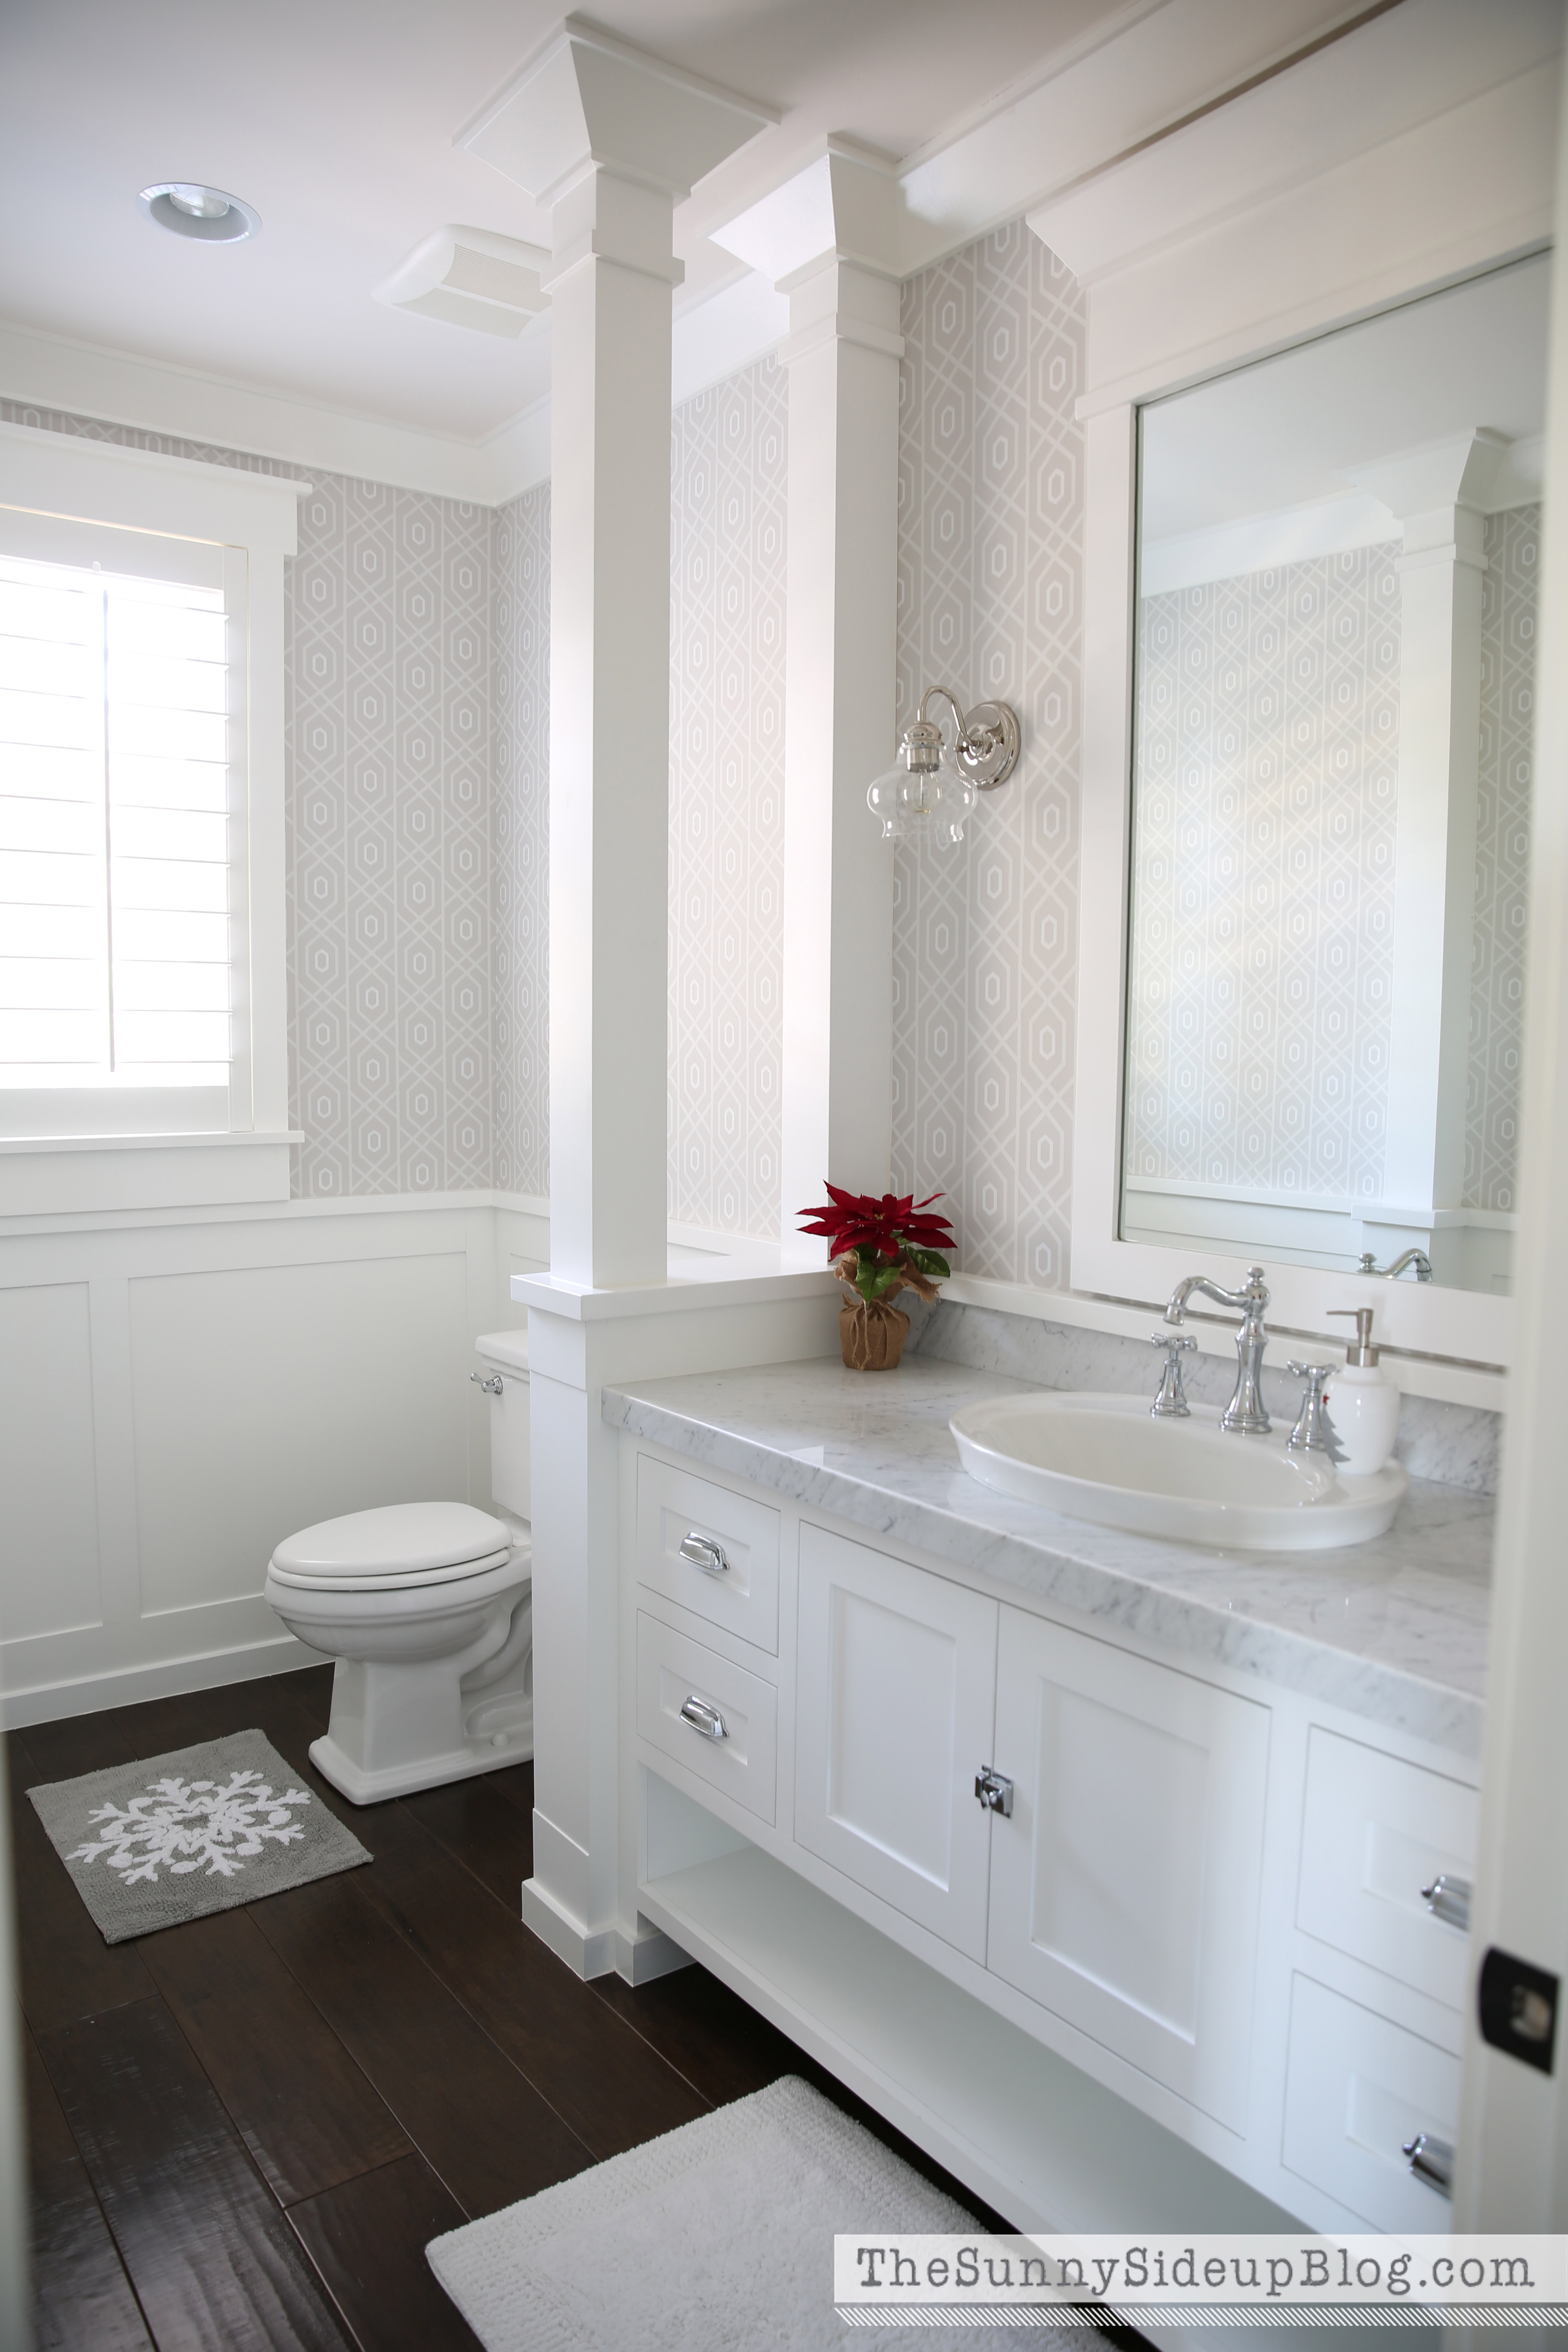 small bathroom wallpaper ideas christmas in the powder bathroom the sunny side up blog 4275